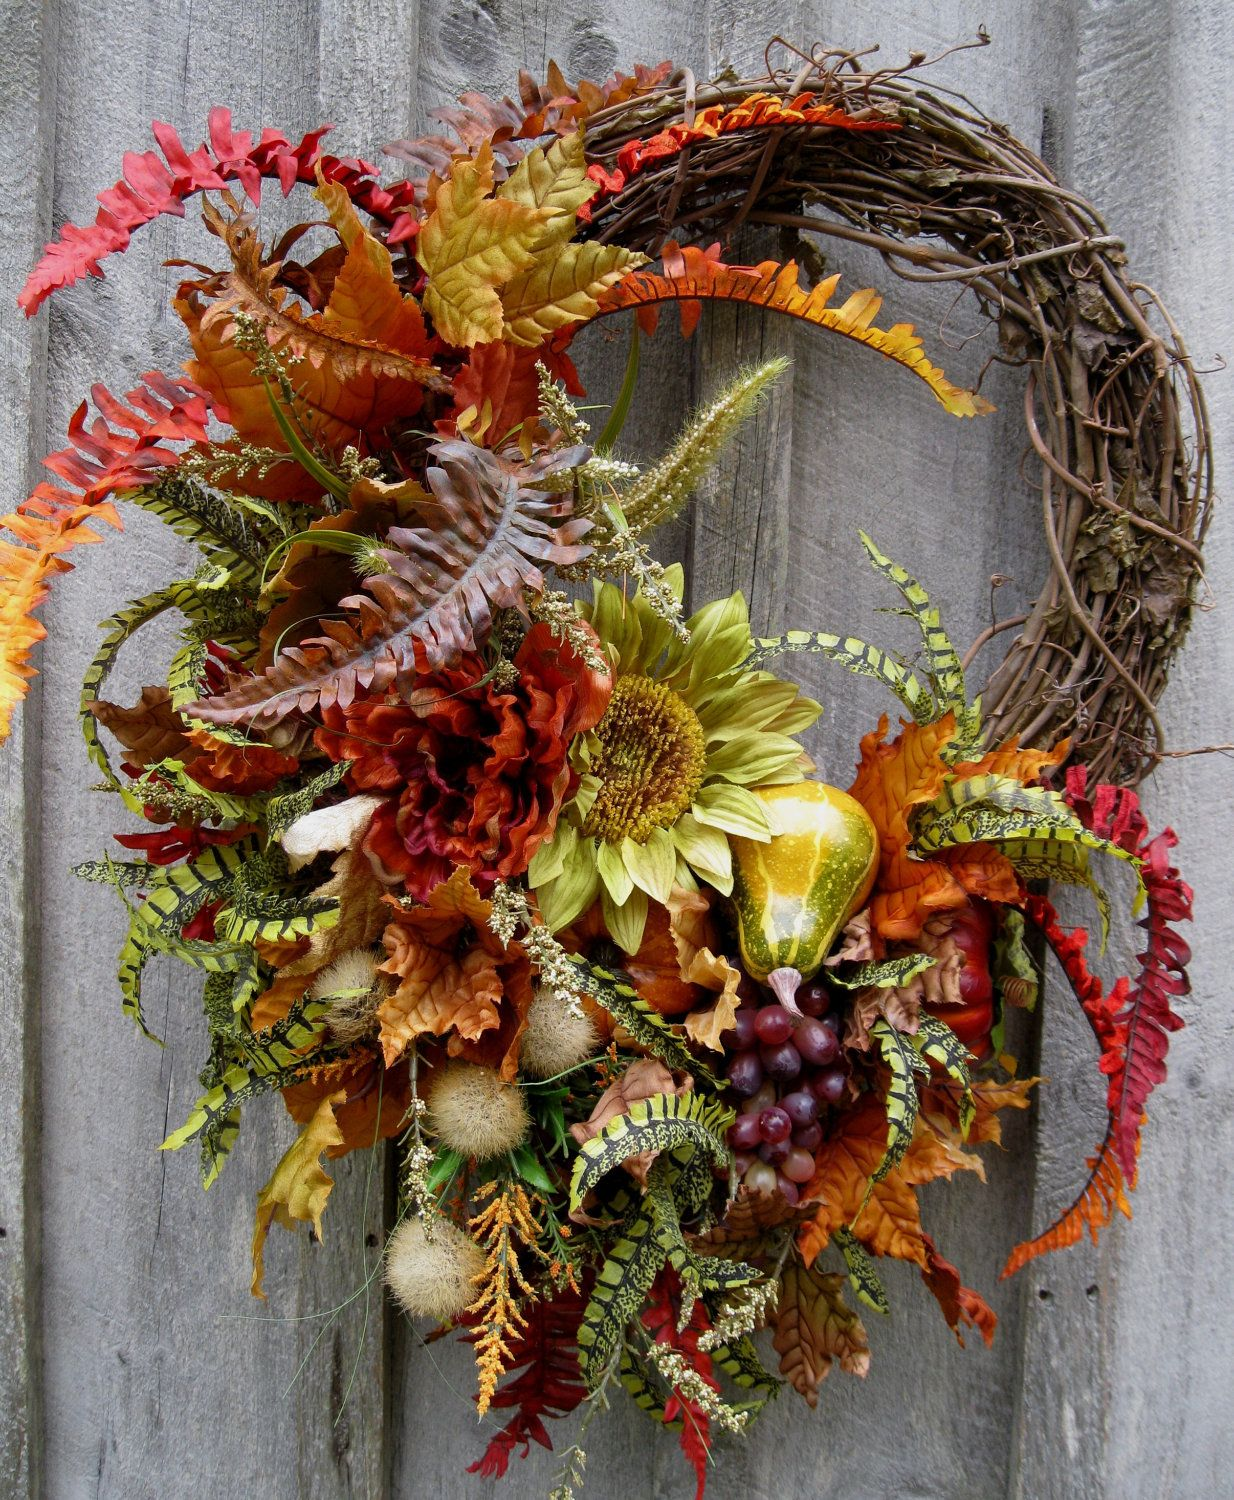 Autumn Wreath, Fall Floral, Designer Wreaths, Sunflowers, Tuscany,  Thanksgiving Wreath